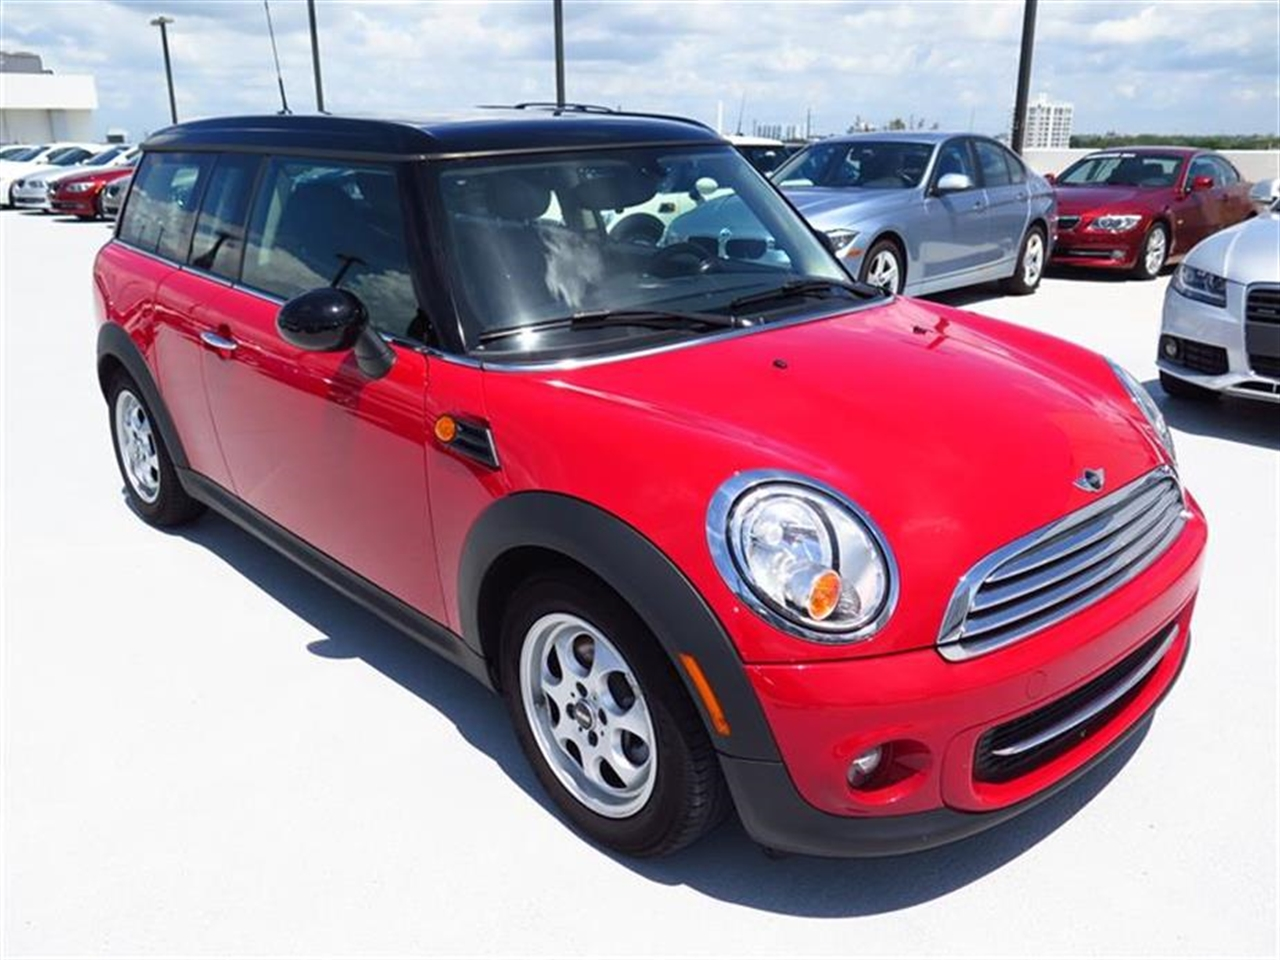 2013 MINI COOPER CLUBMAN 2dr Cpe 13149 miles 1 rear cup holder 2 12V pwr outlets 5050 split